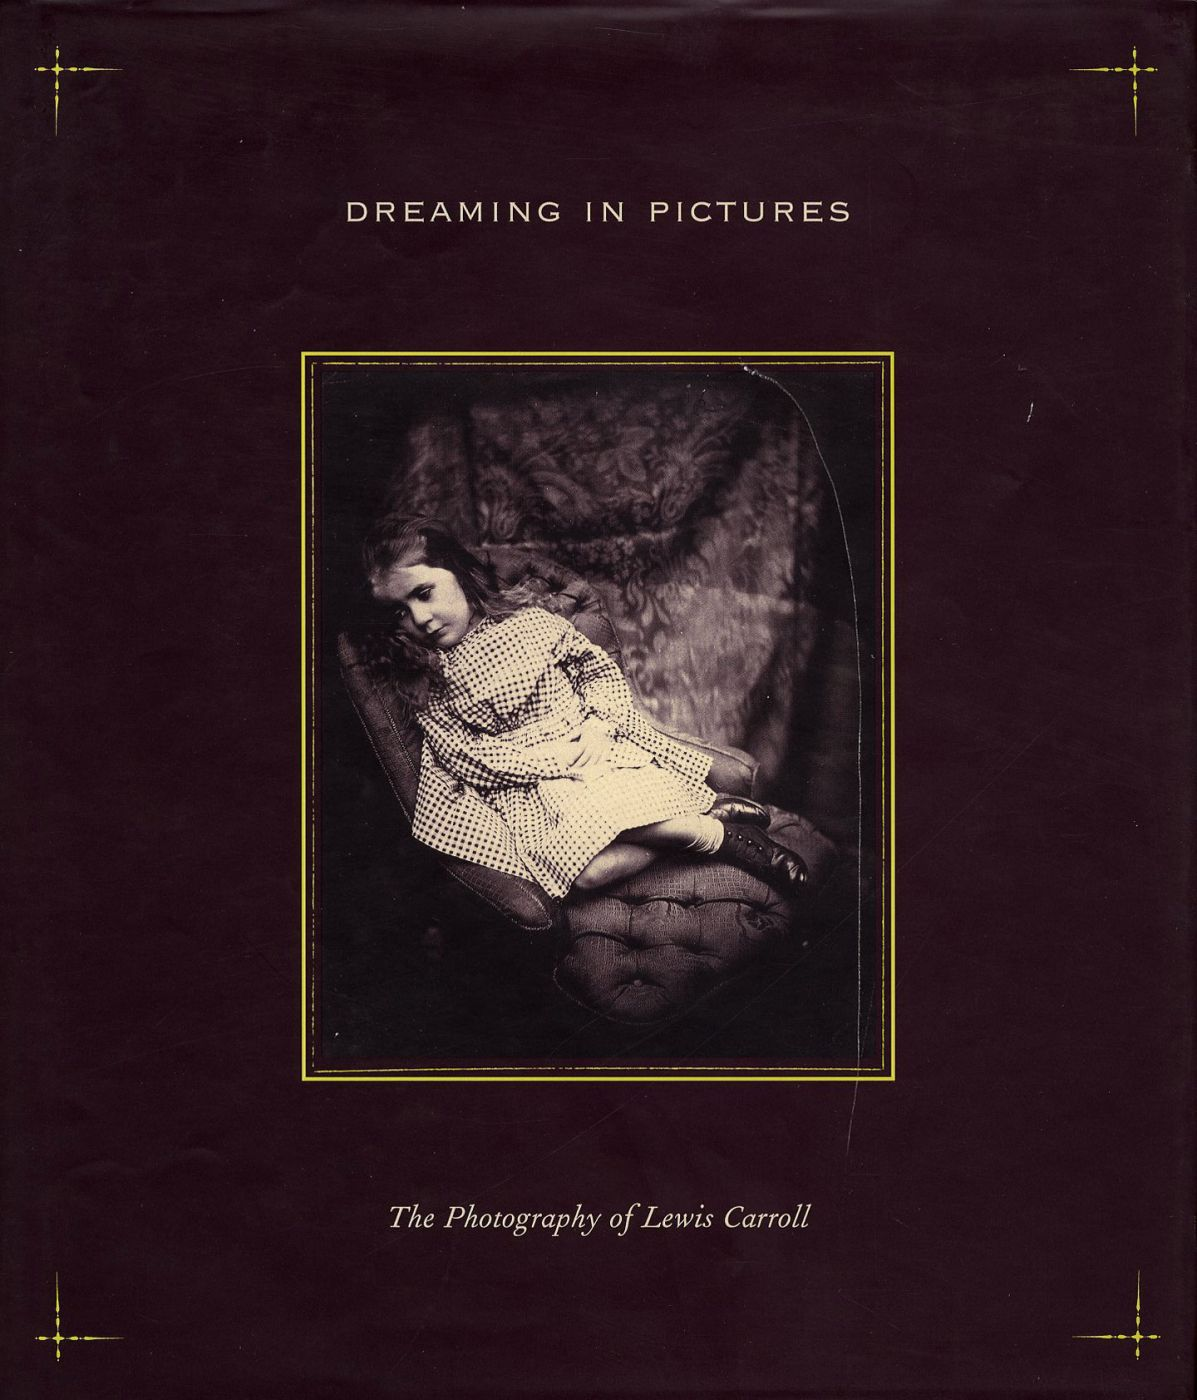 Dreaming in Pictures: The Photography of Lewis Carroll